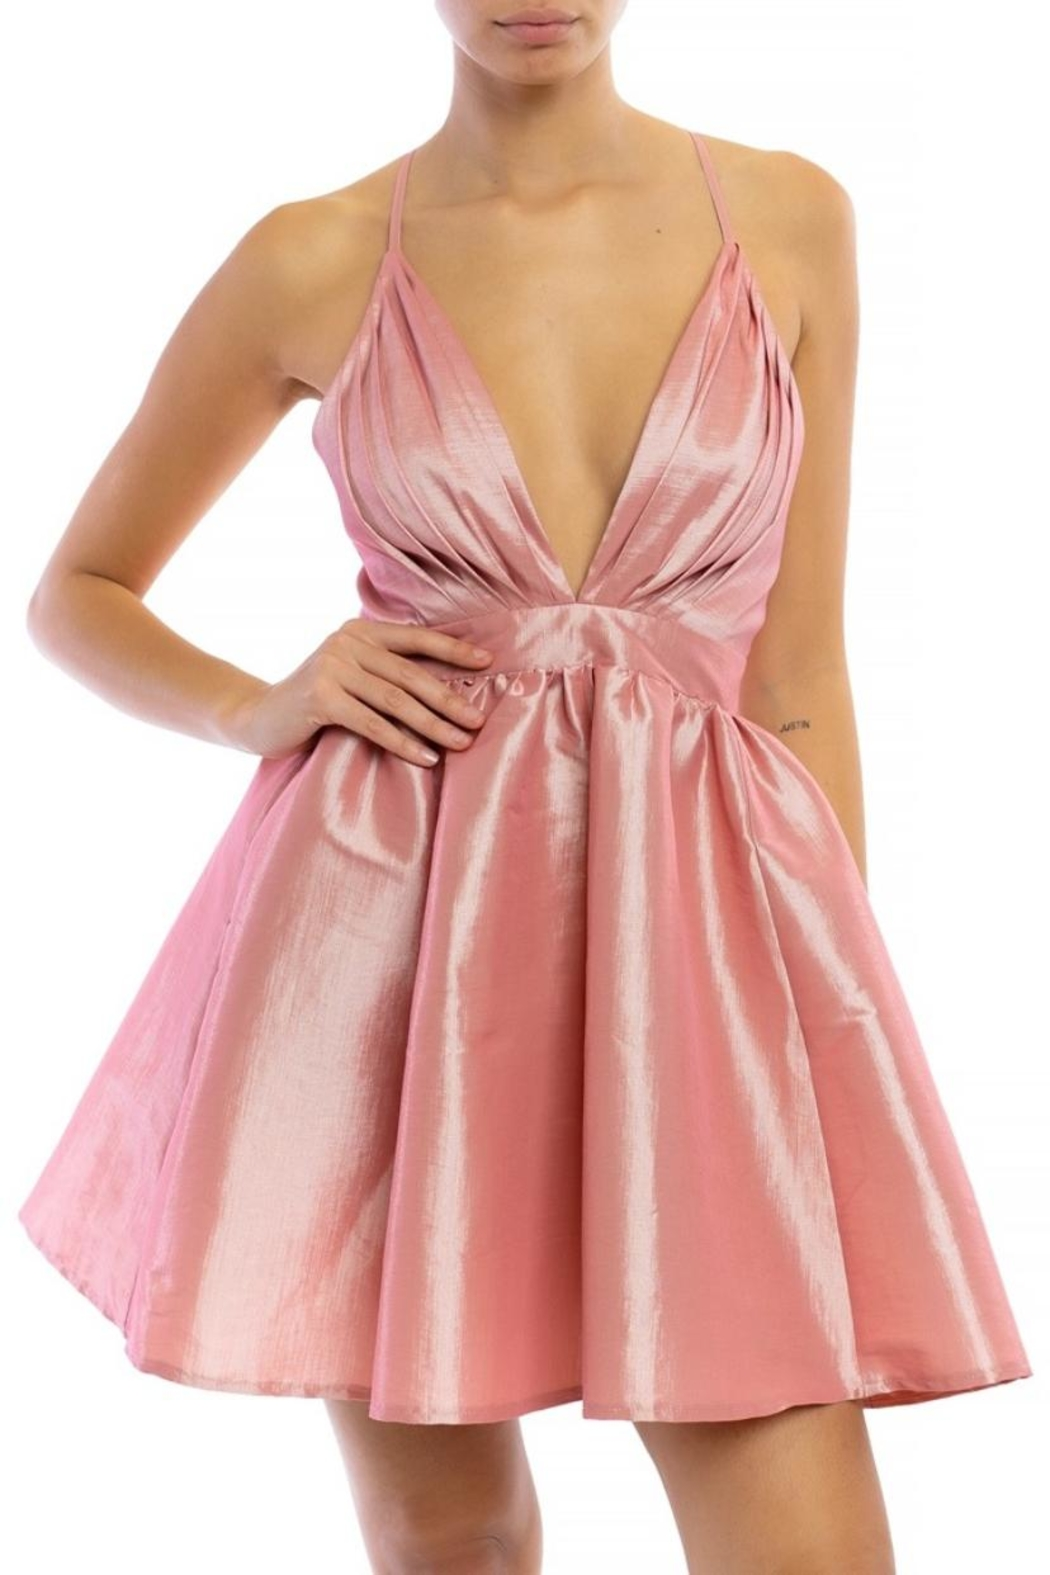 luxxel Satin Tutu Mini-Dress - Main Image